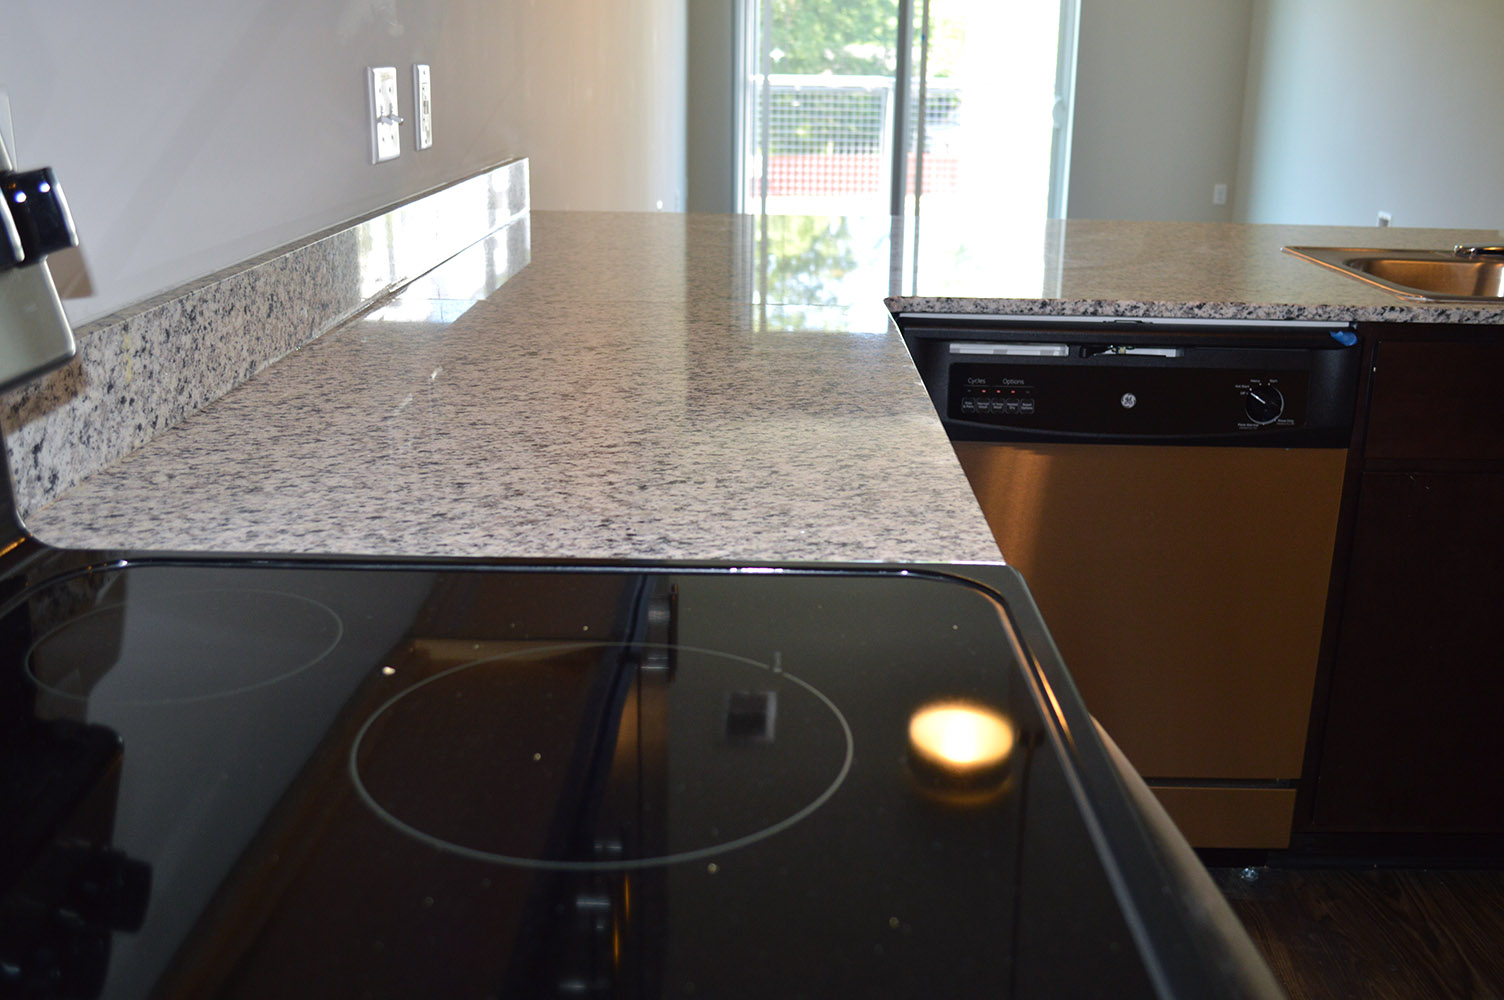 White Granite Countertops Add A Light And Airy Feel